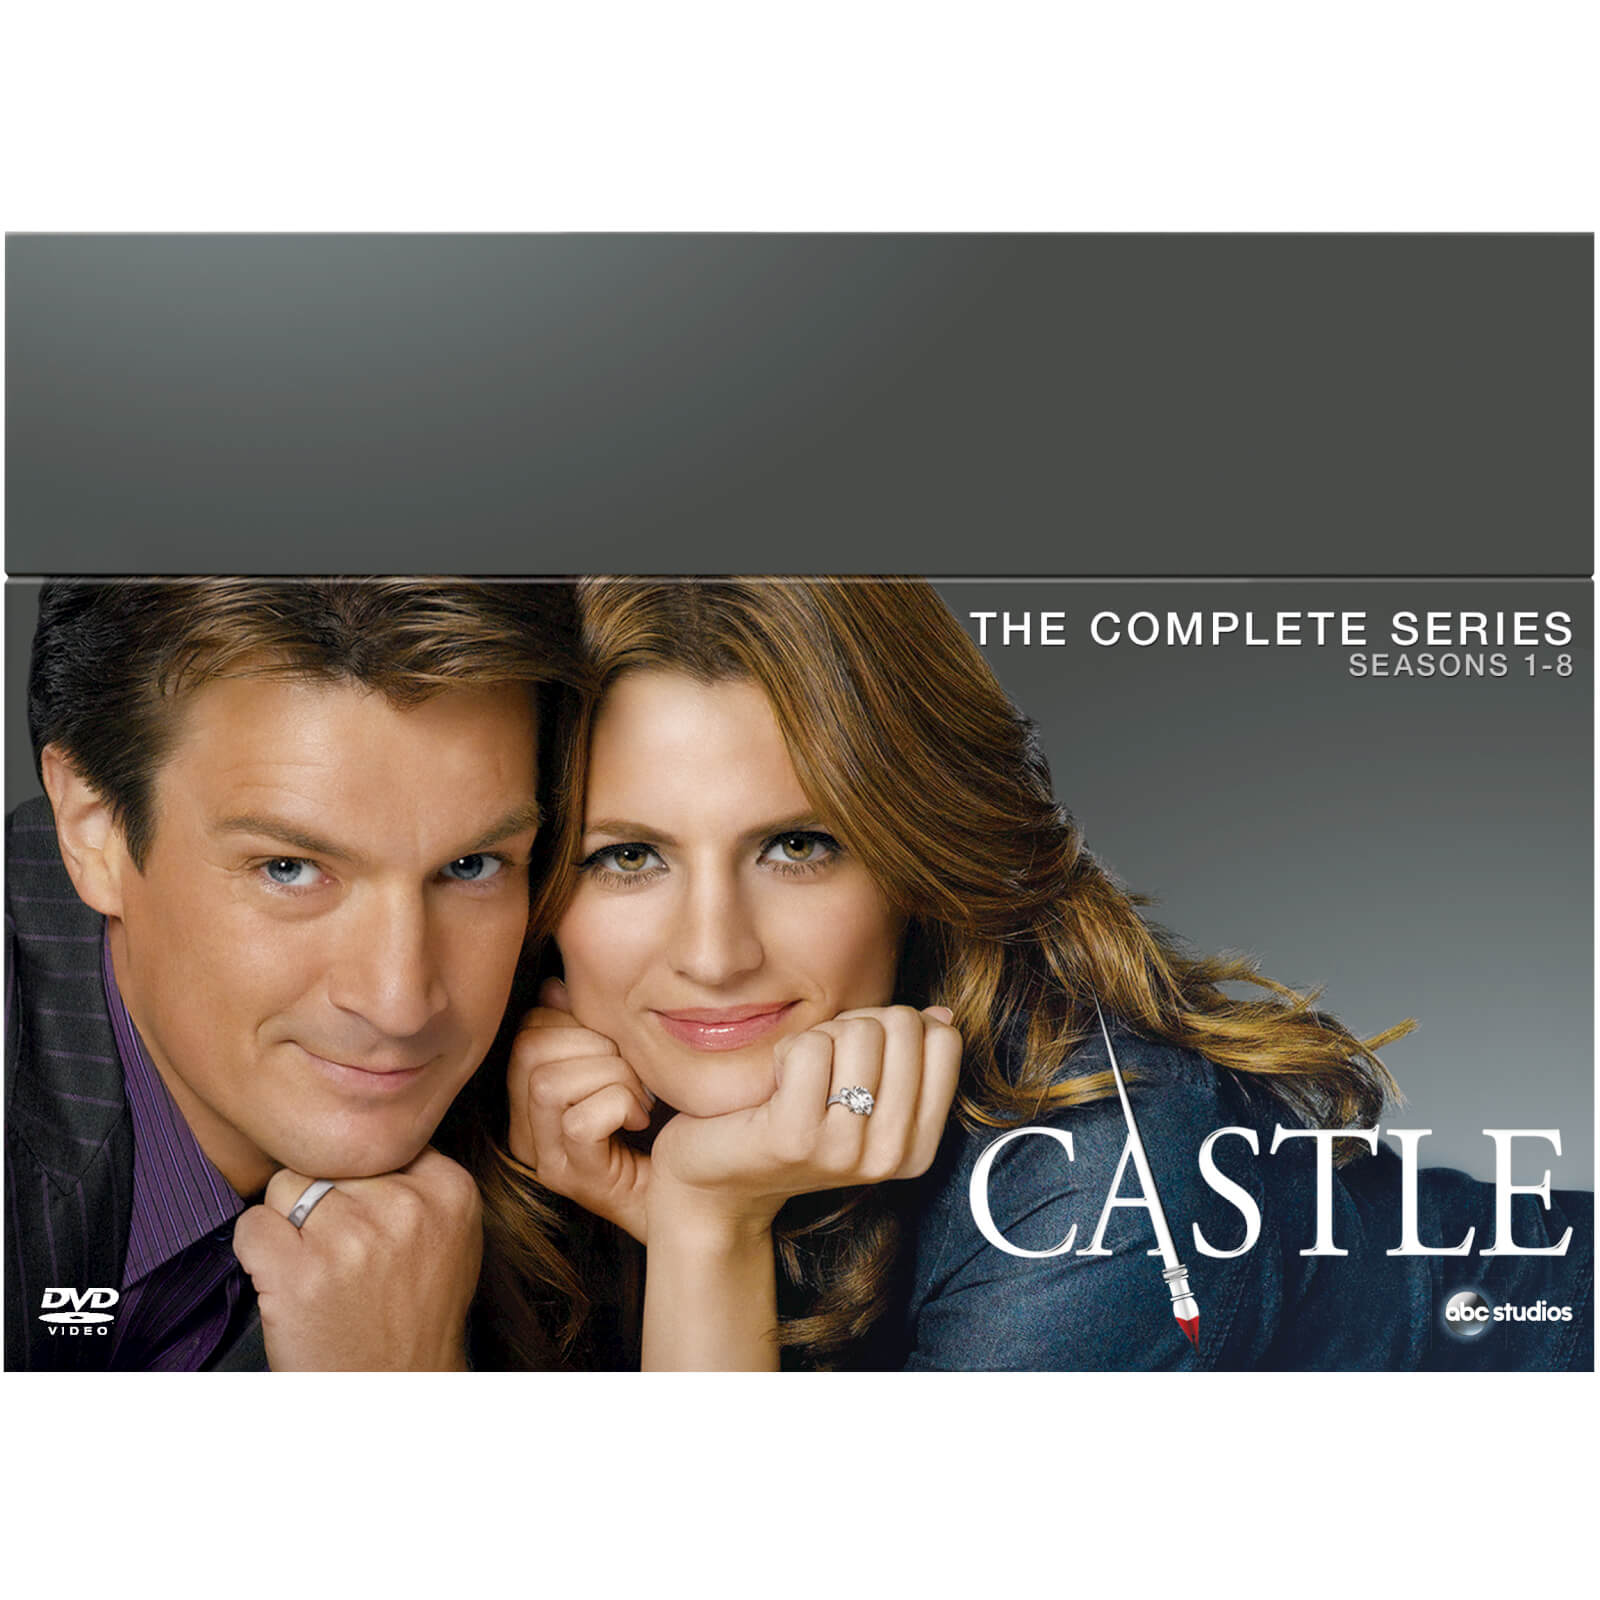 Castle Season 1-8 Complete Box Set